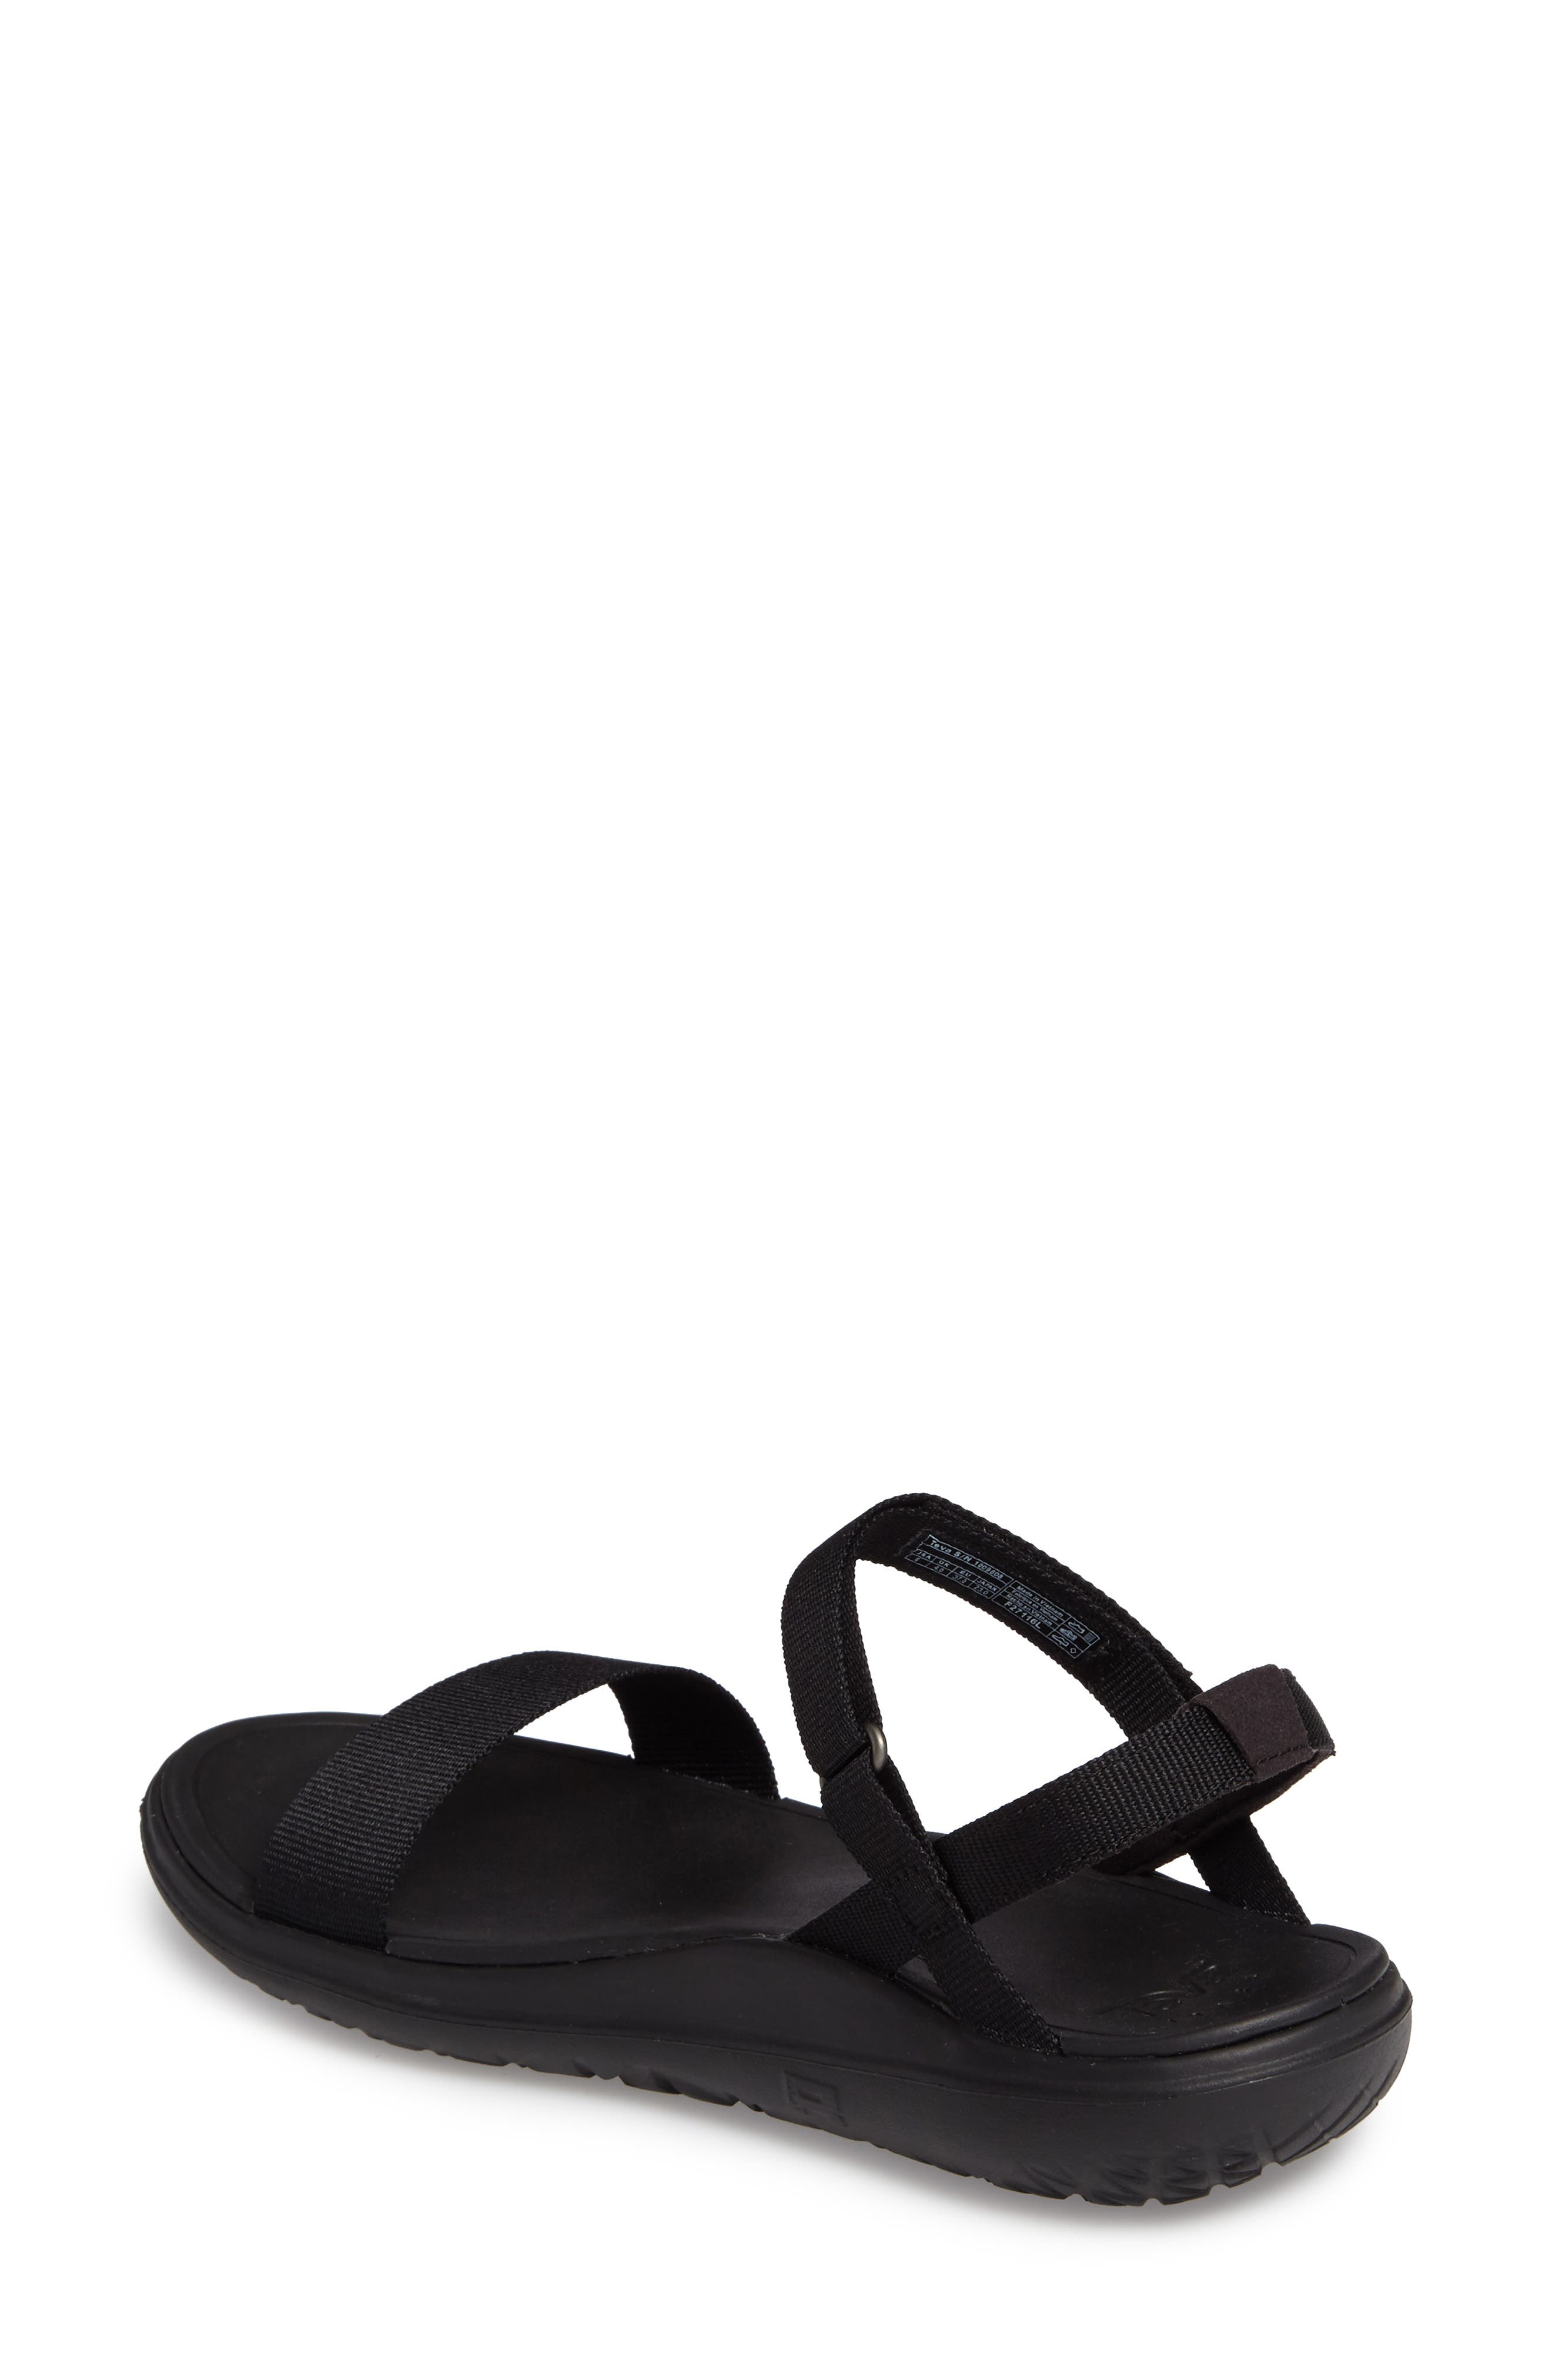 Terra Float Nova Sandal,                             Alternate thumbnail 2, color,                             Black Fabric